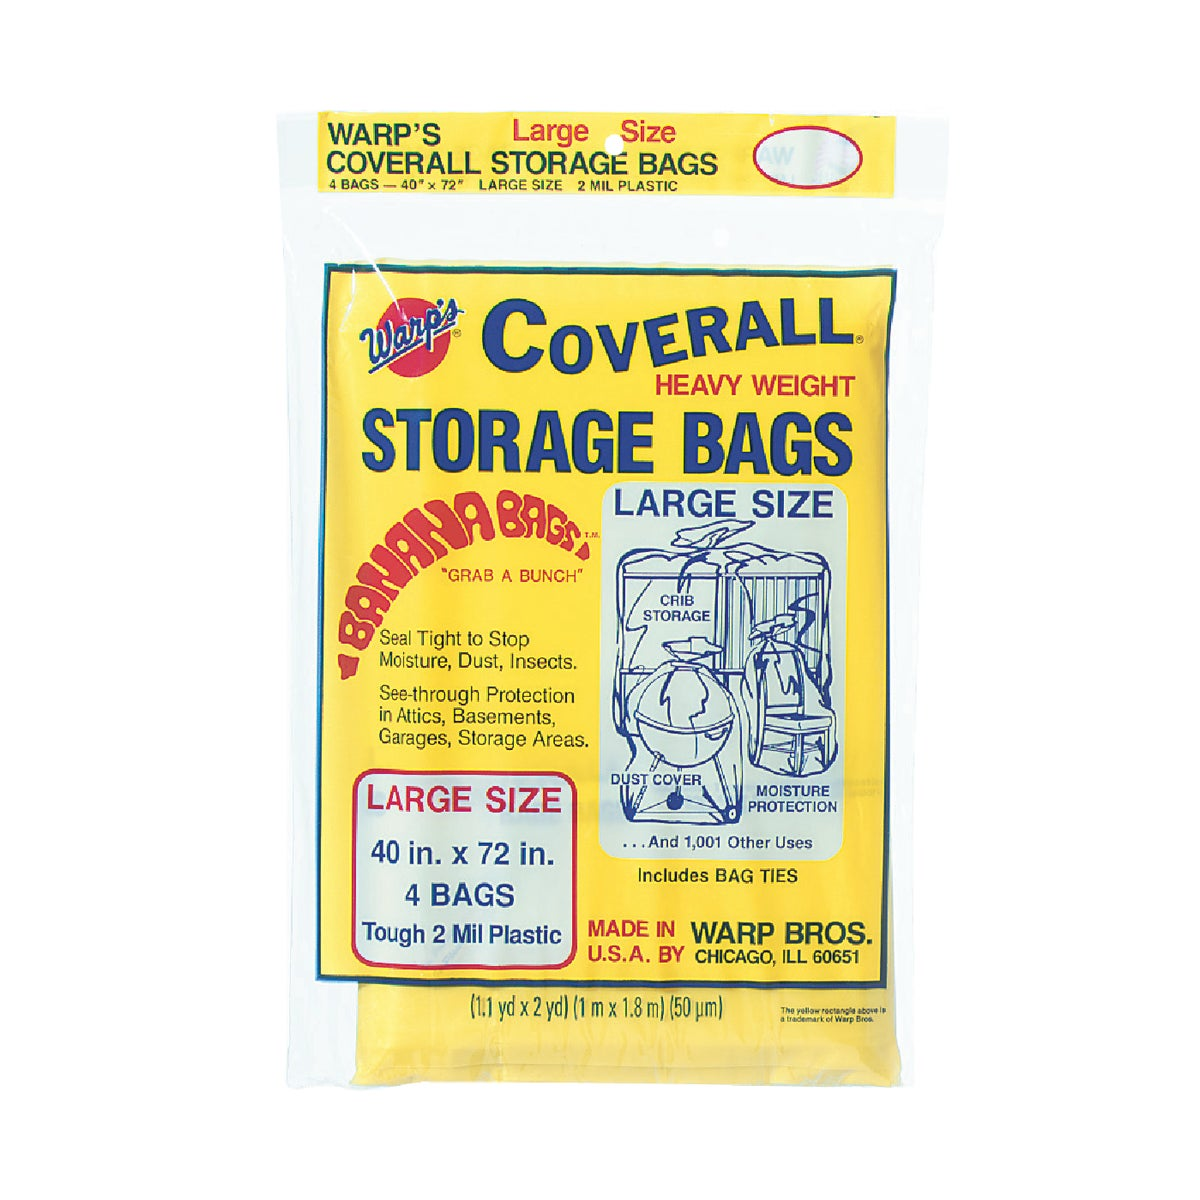 40X72 STORAGE BAG - CB40 by Warp Bros